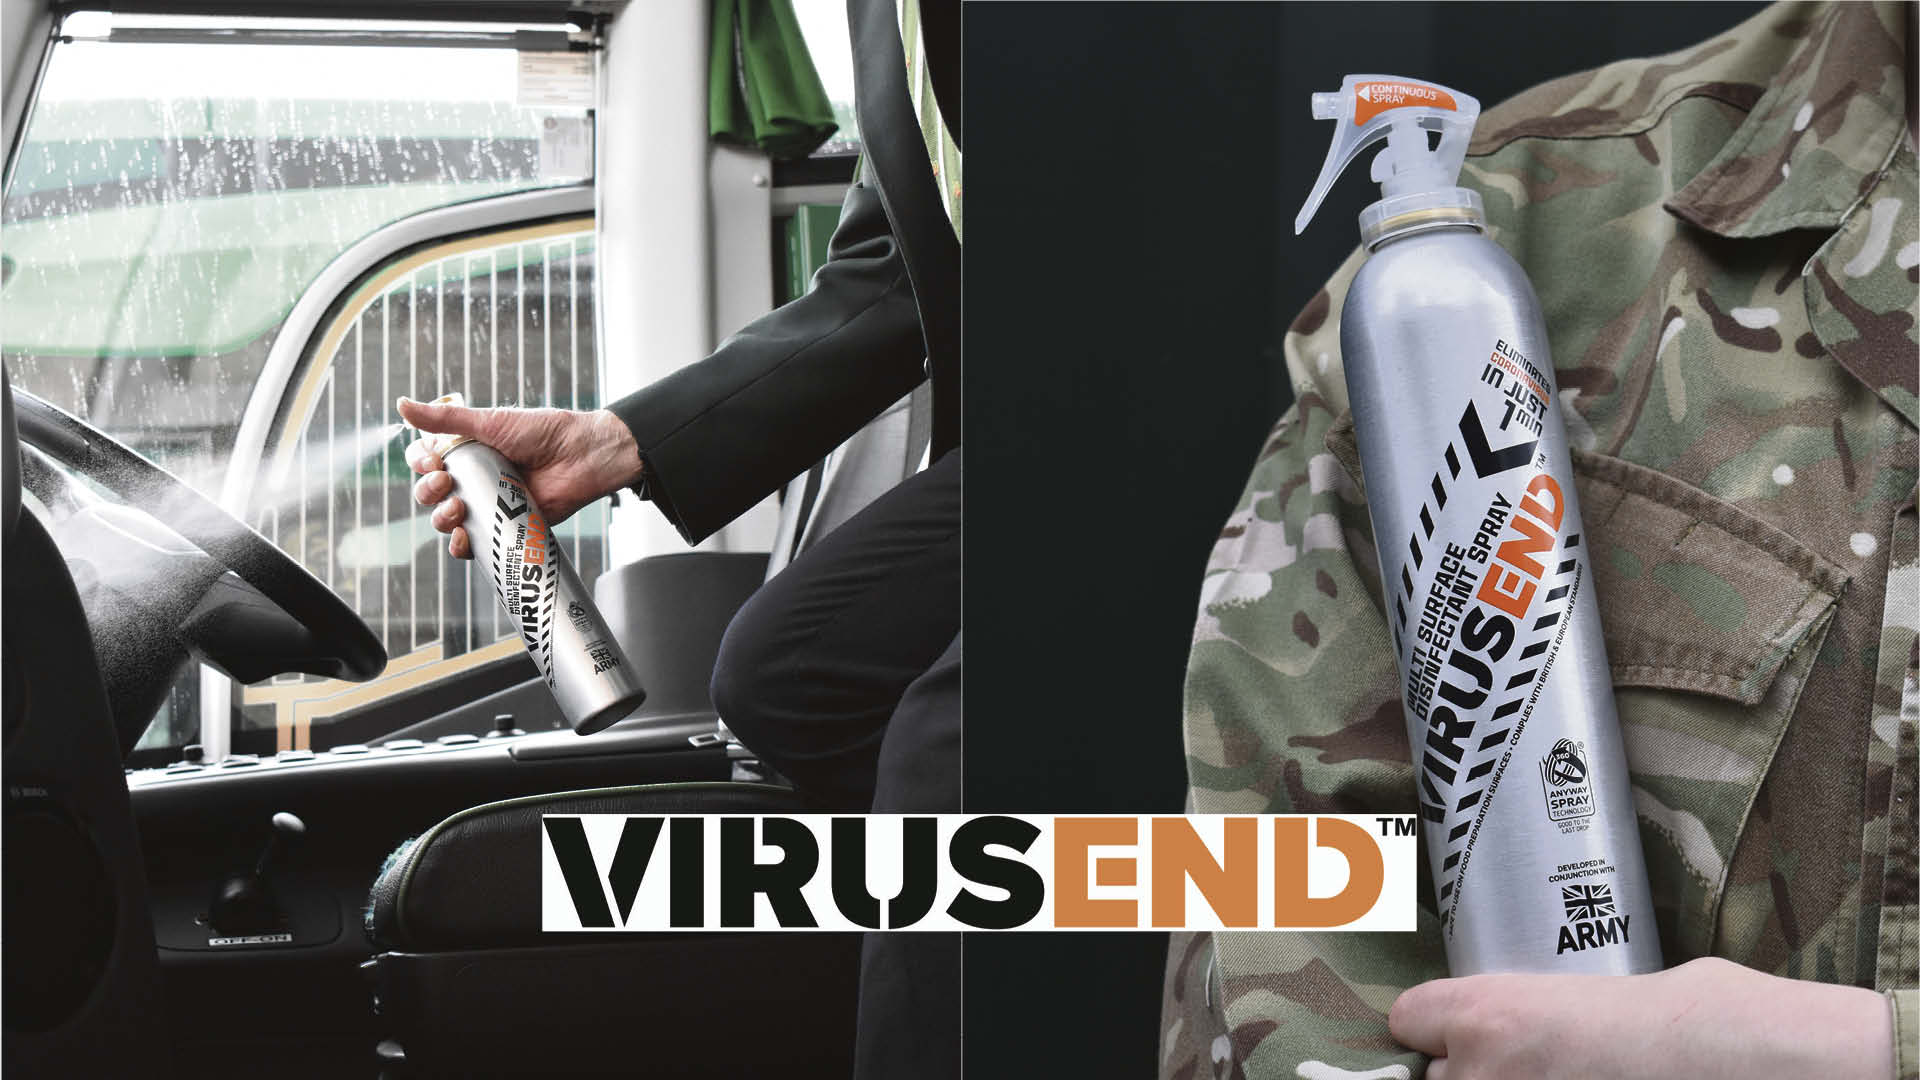 Win a year's supply of VIRUSEND™ for your business Worth up to £500!